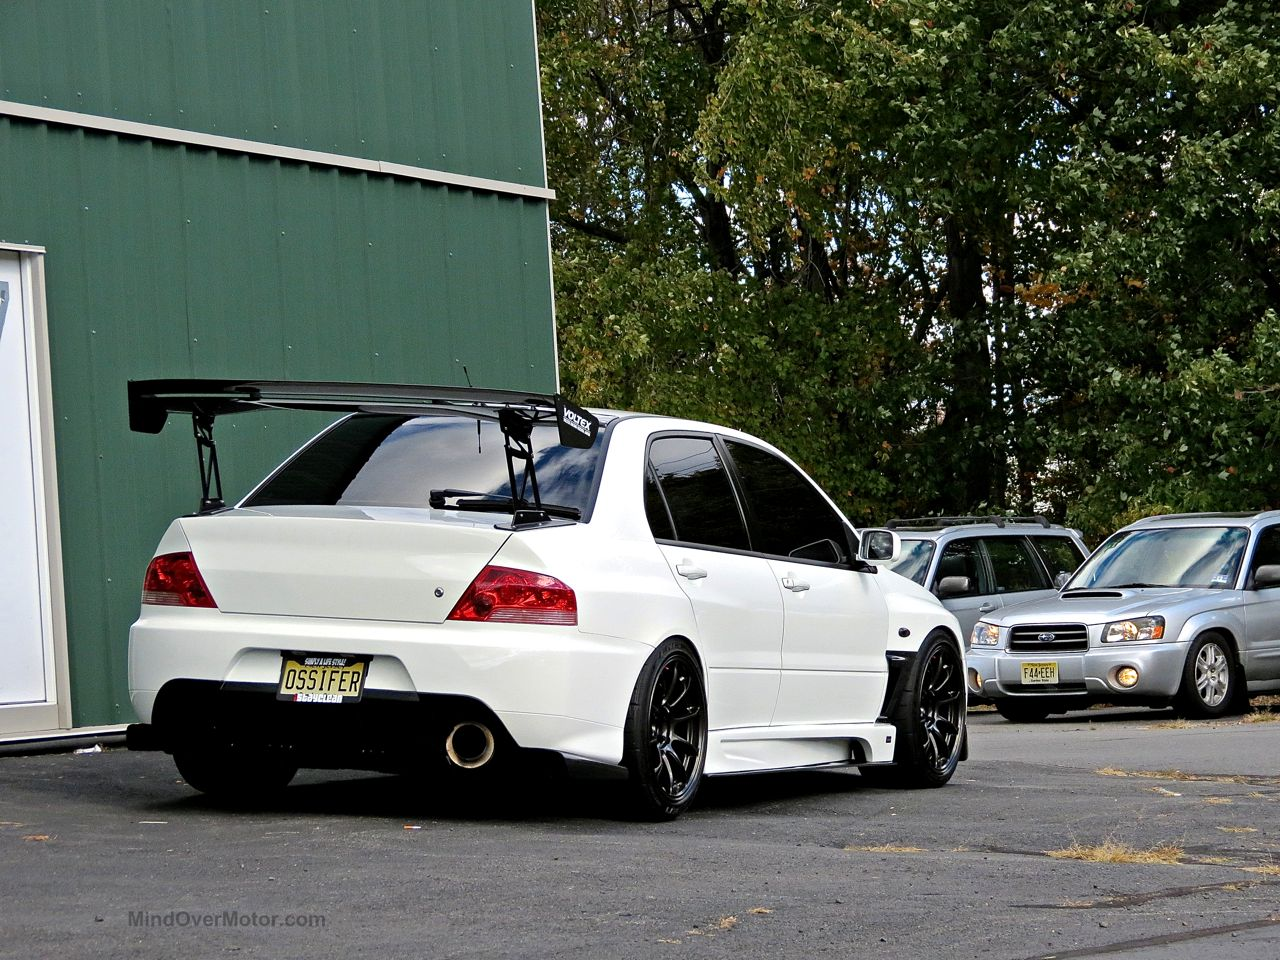 Modified Mitsubishi Lancer Evo First Class Fitment 4